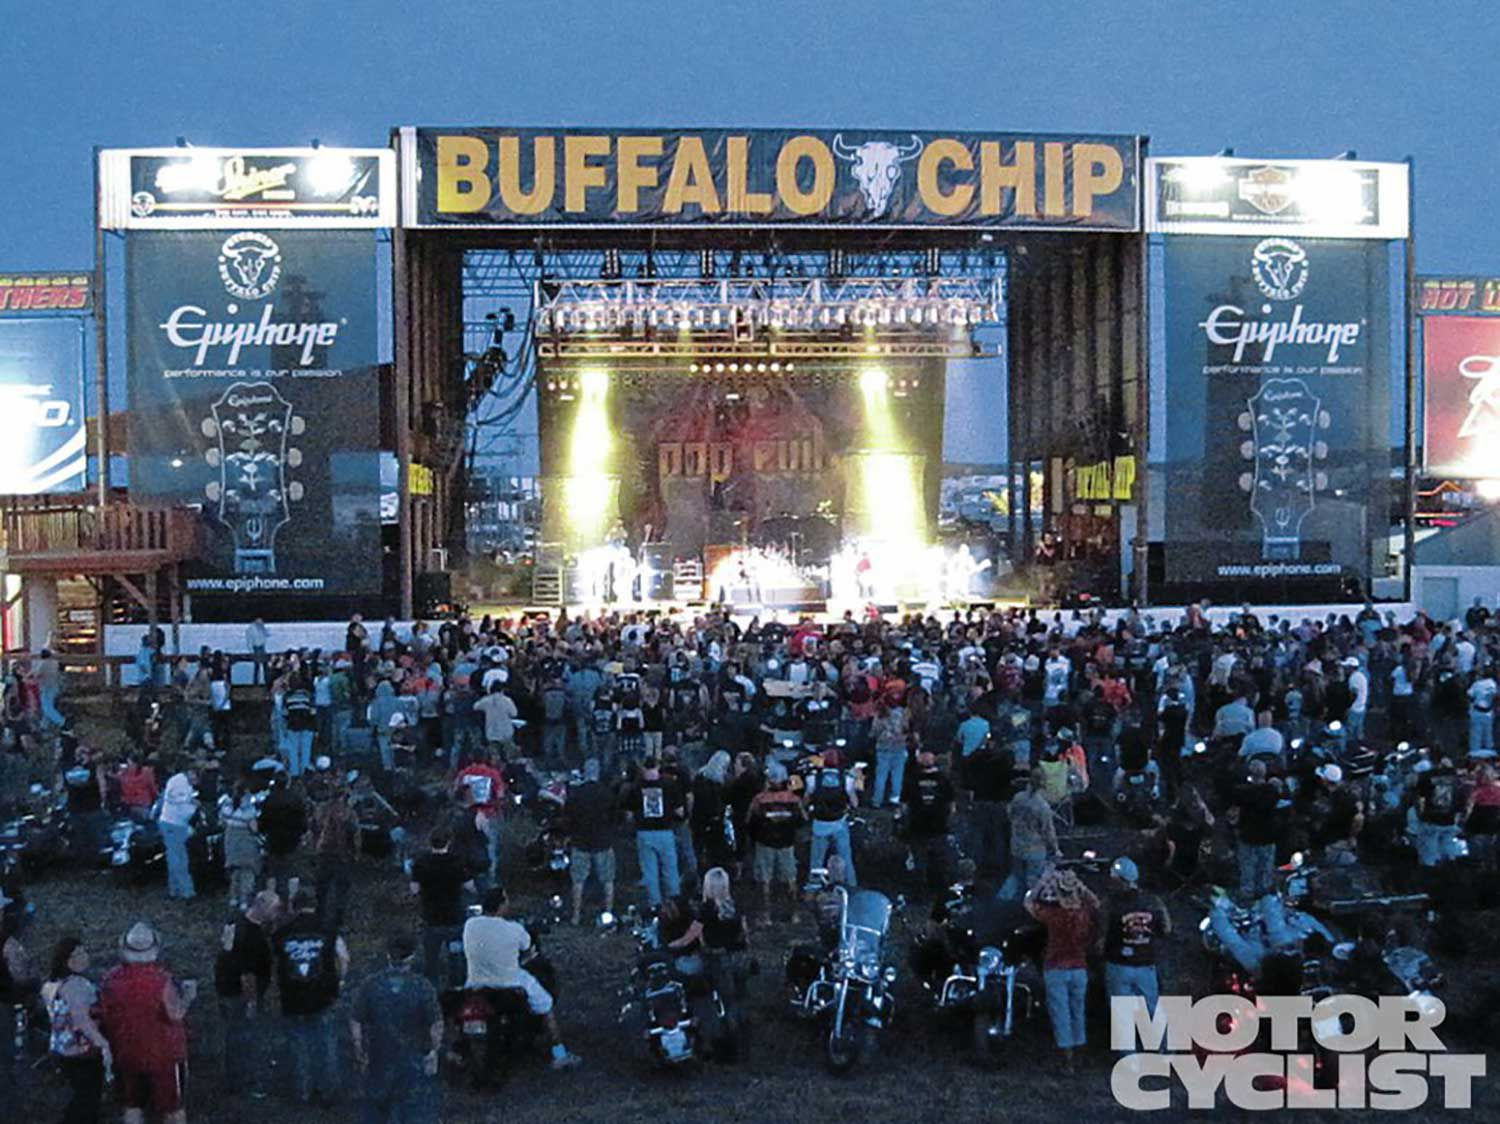 The Buffalo Chip Campground hosts live concerts, racing, and has been the premier party scene at Sturgis for many years and it keeps getting bigger.